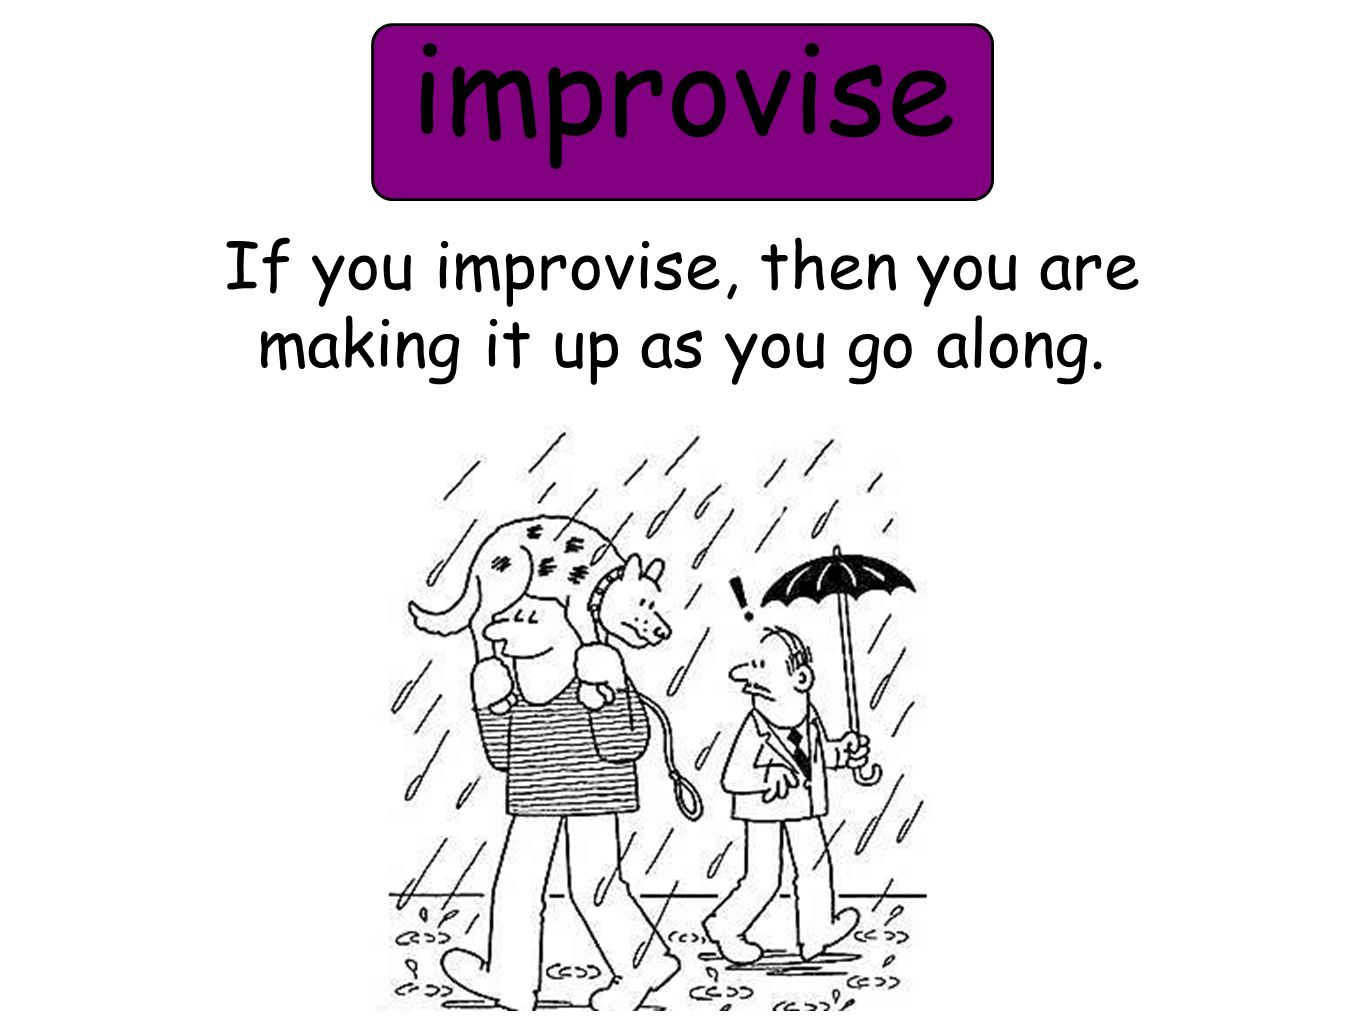 improvise If you improvise, then you are making it up as you go along.